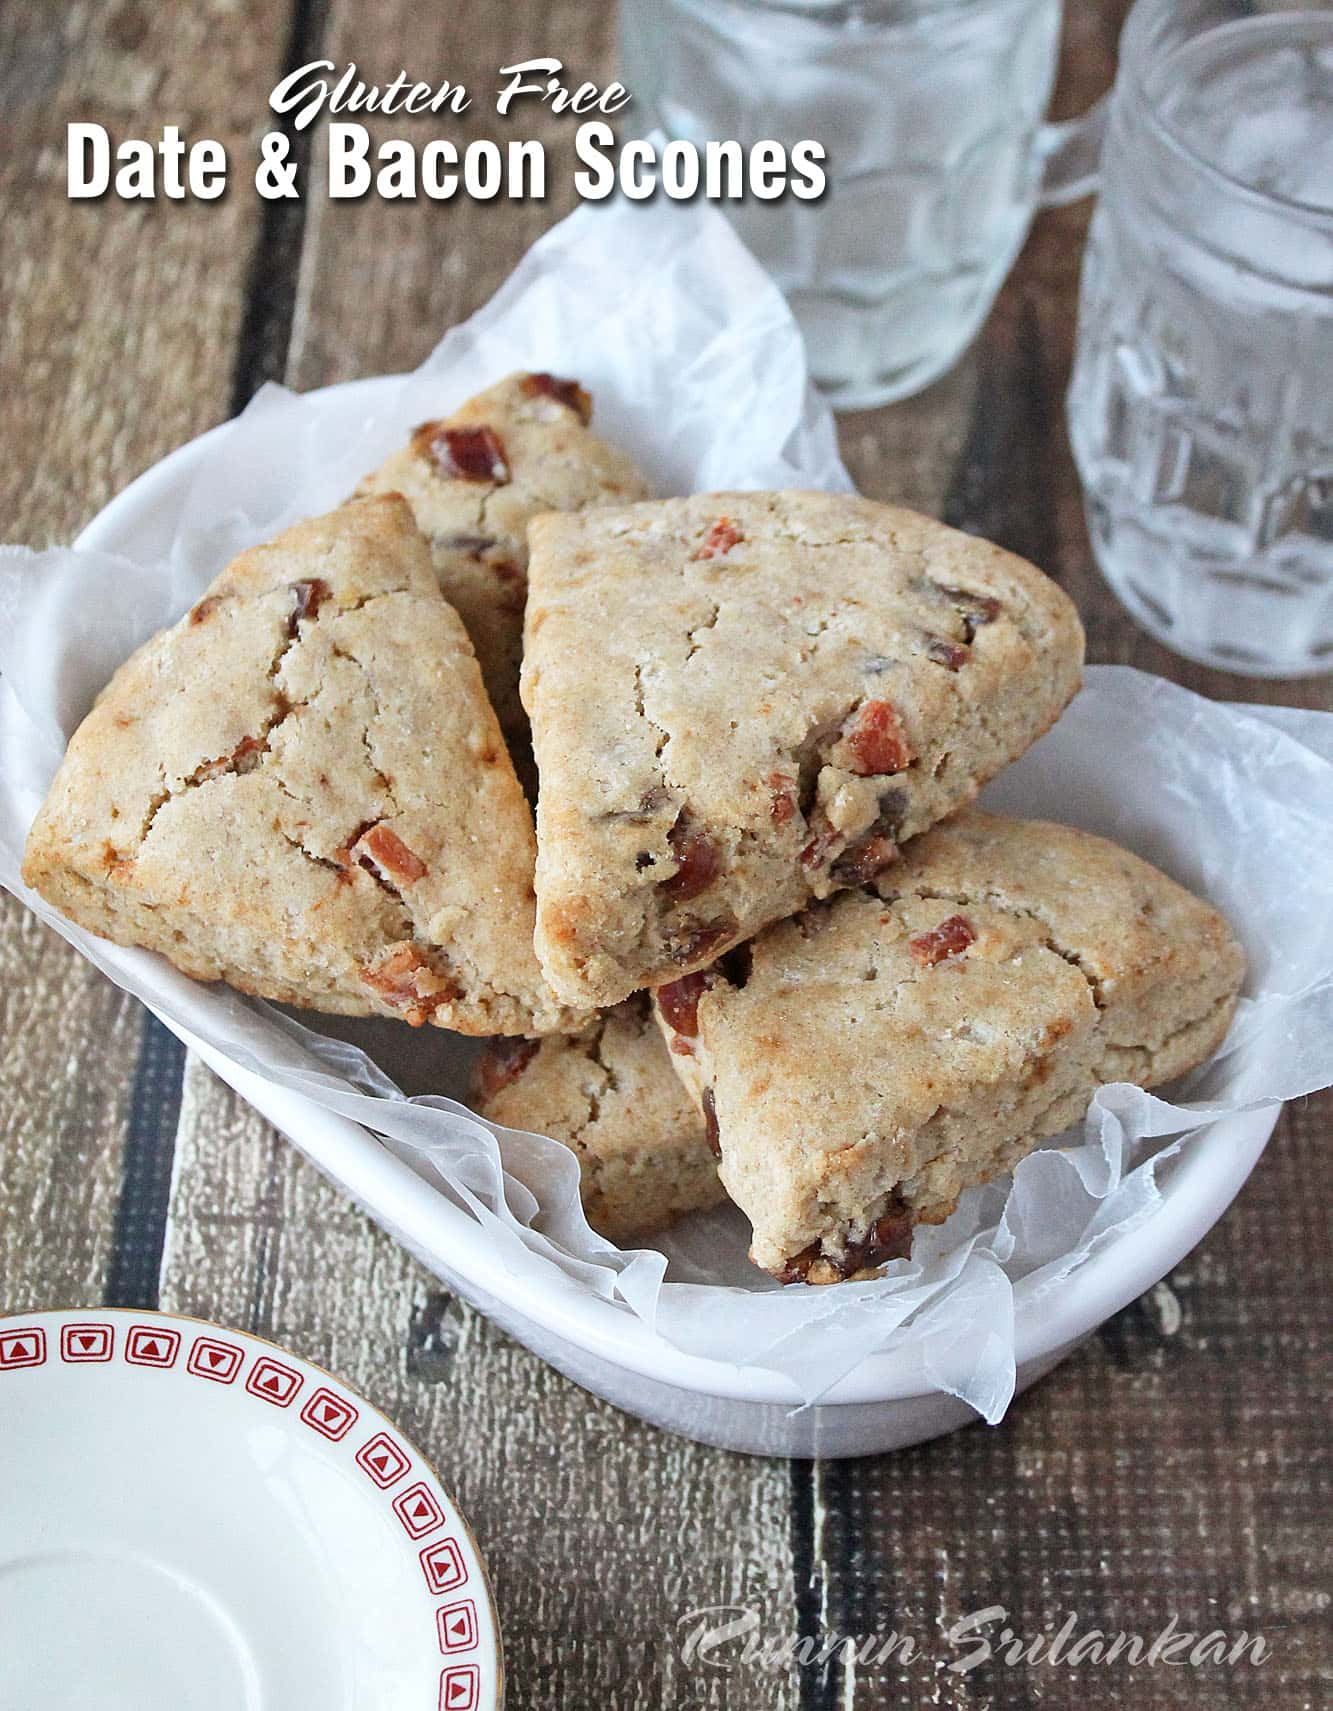 Gluten Free, Sweet and Salty, Date and Bacon Scones